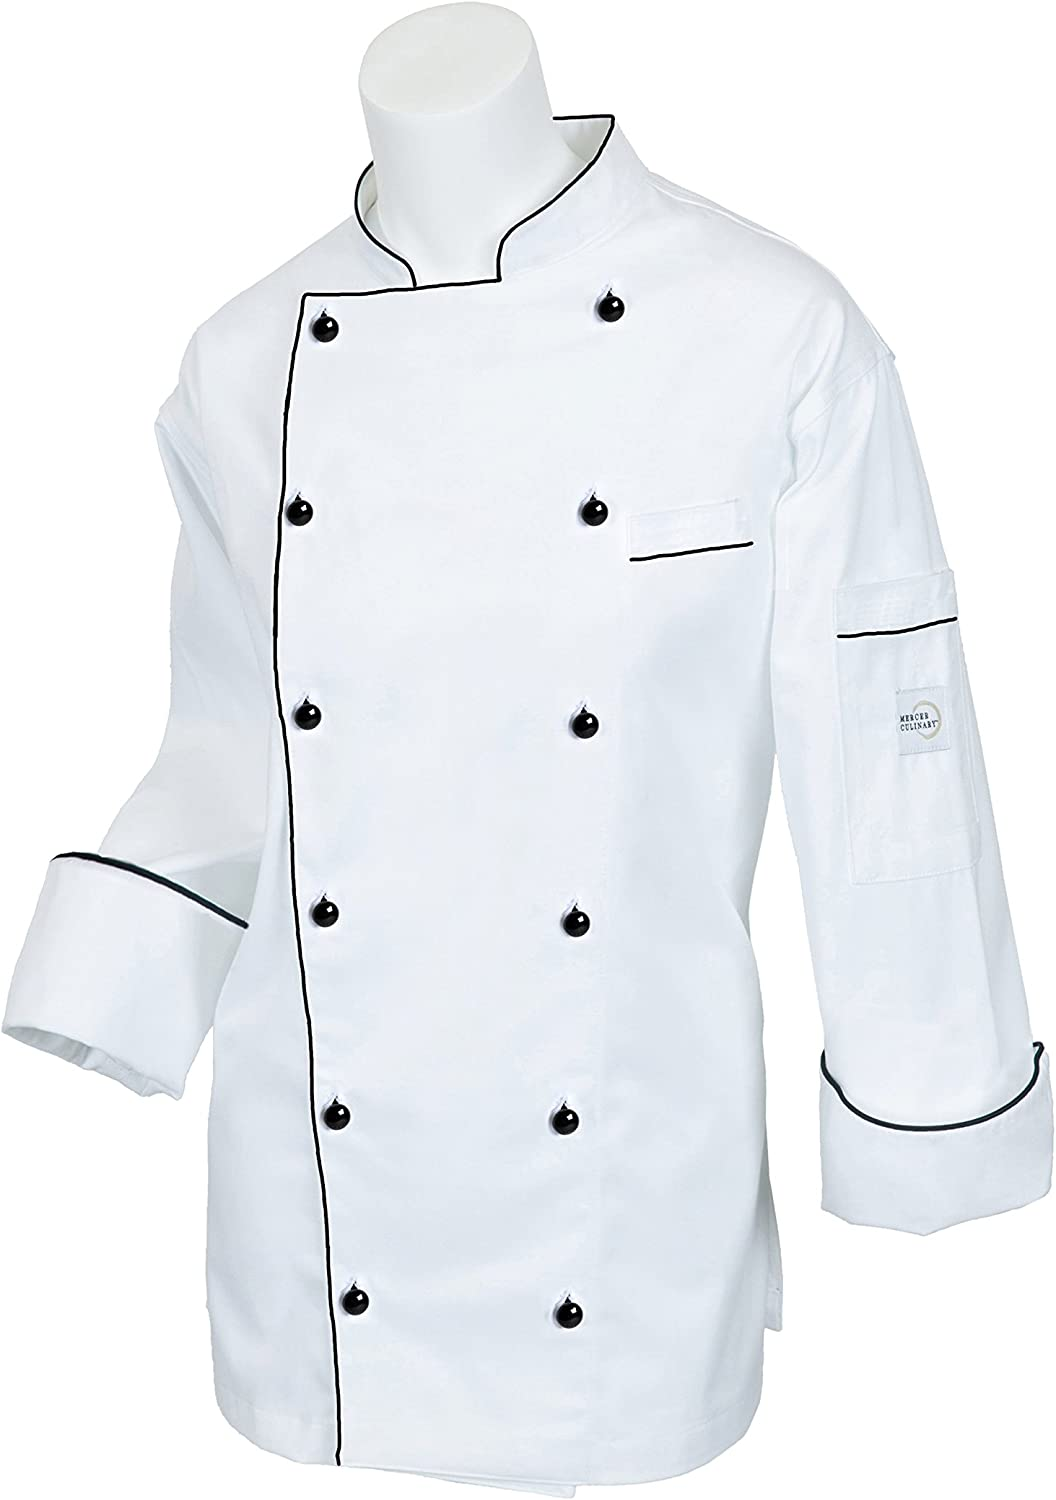 Mercer Culinary M62060WHXS Complete Free Shipping Renaissance Traditional Neck Purchase Women's